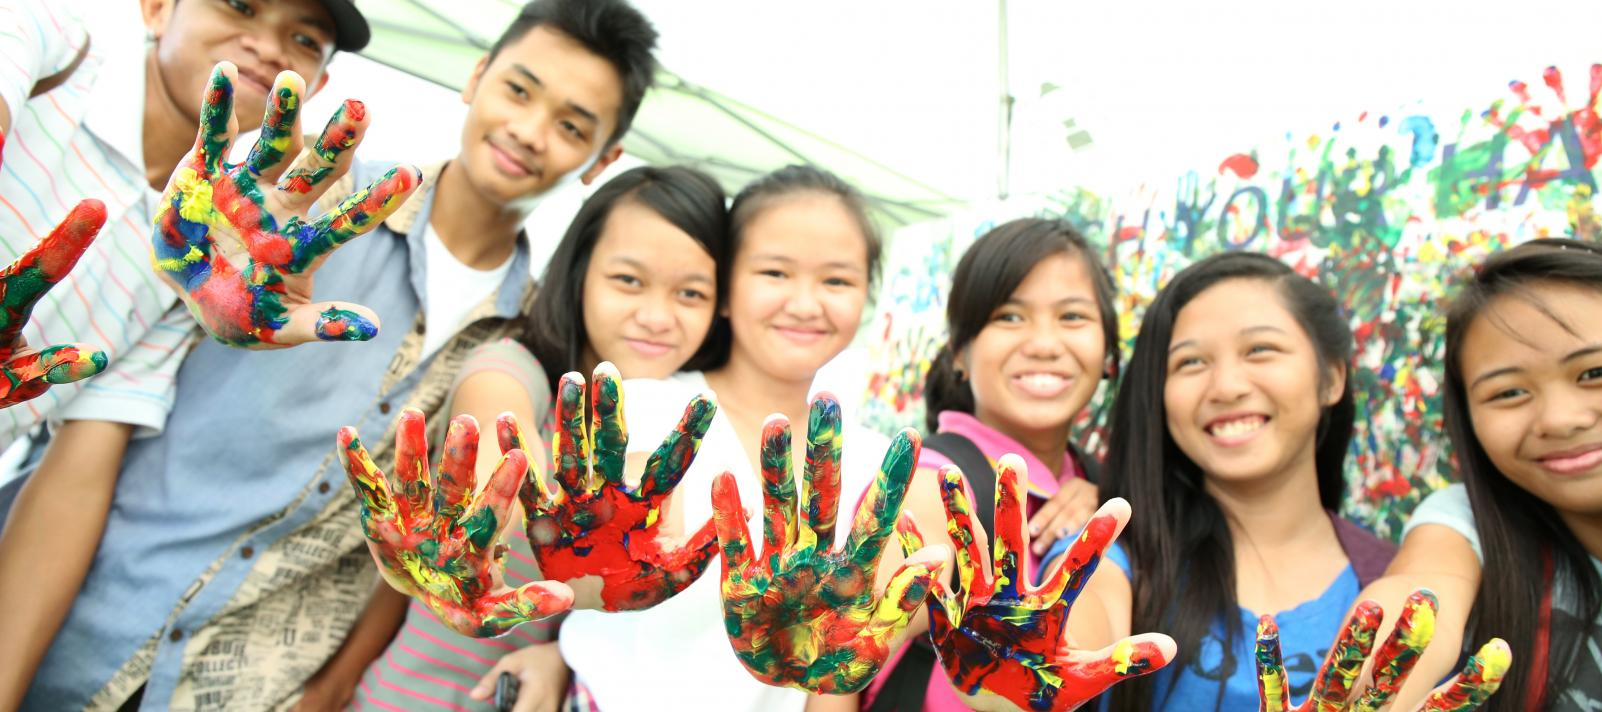 Adolescents show their palms with paint at a mural painting session